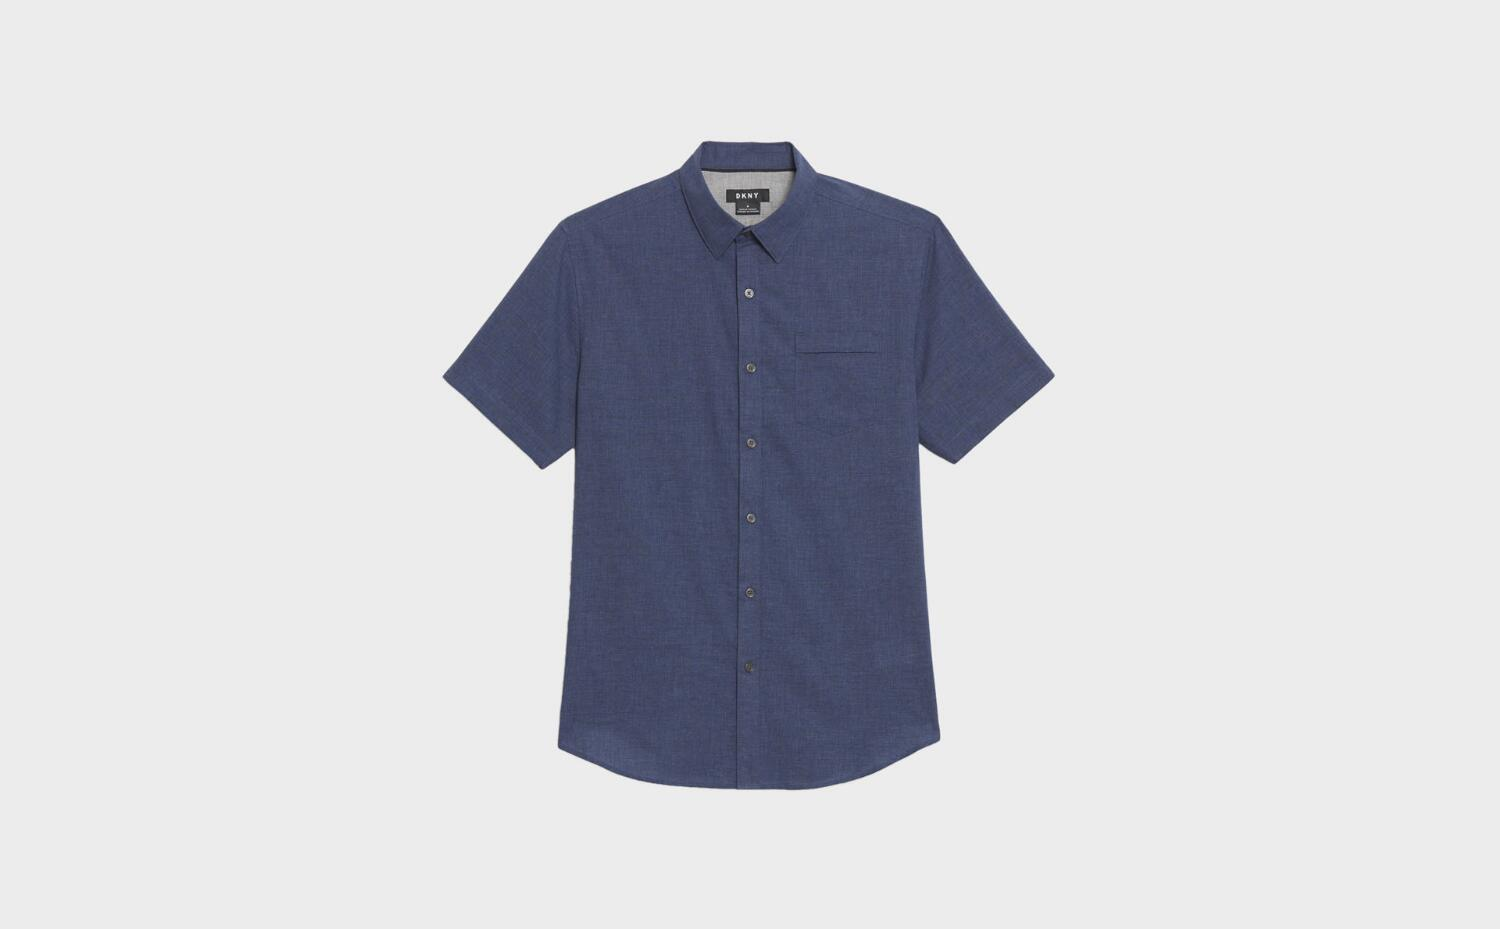 7.One button down short sleeves shirt